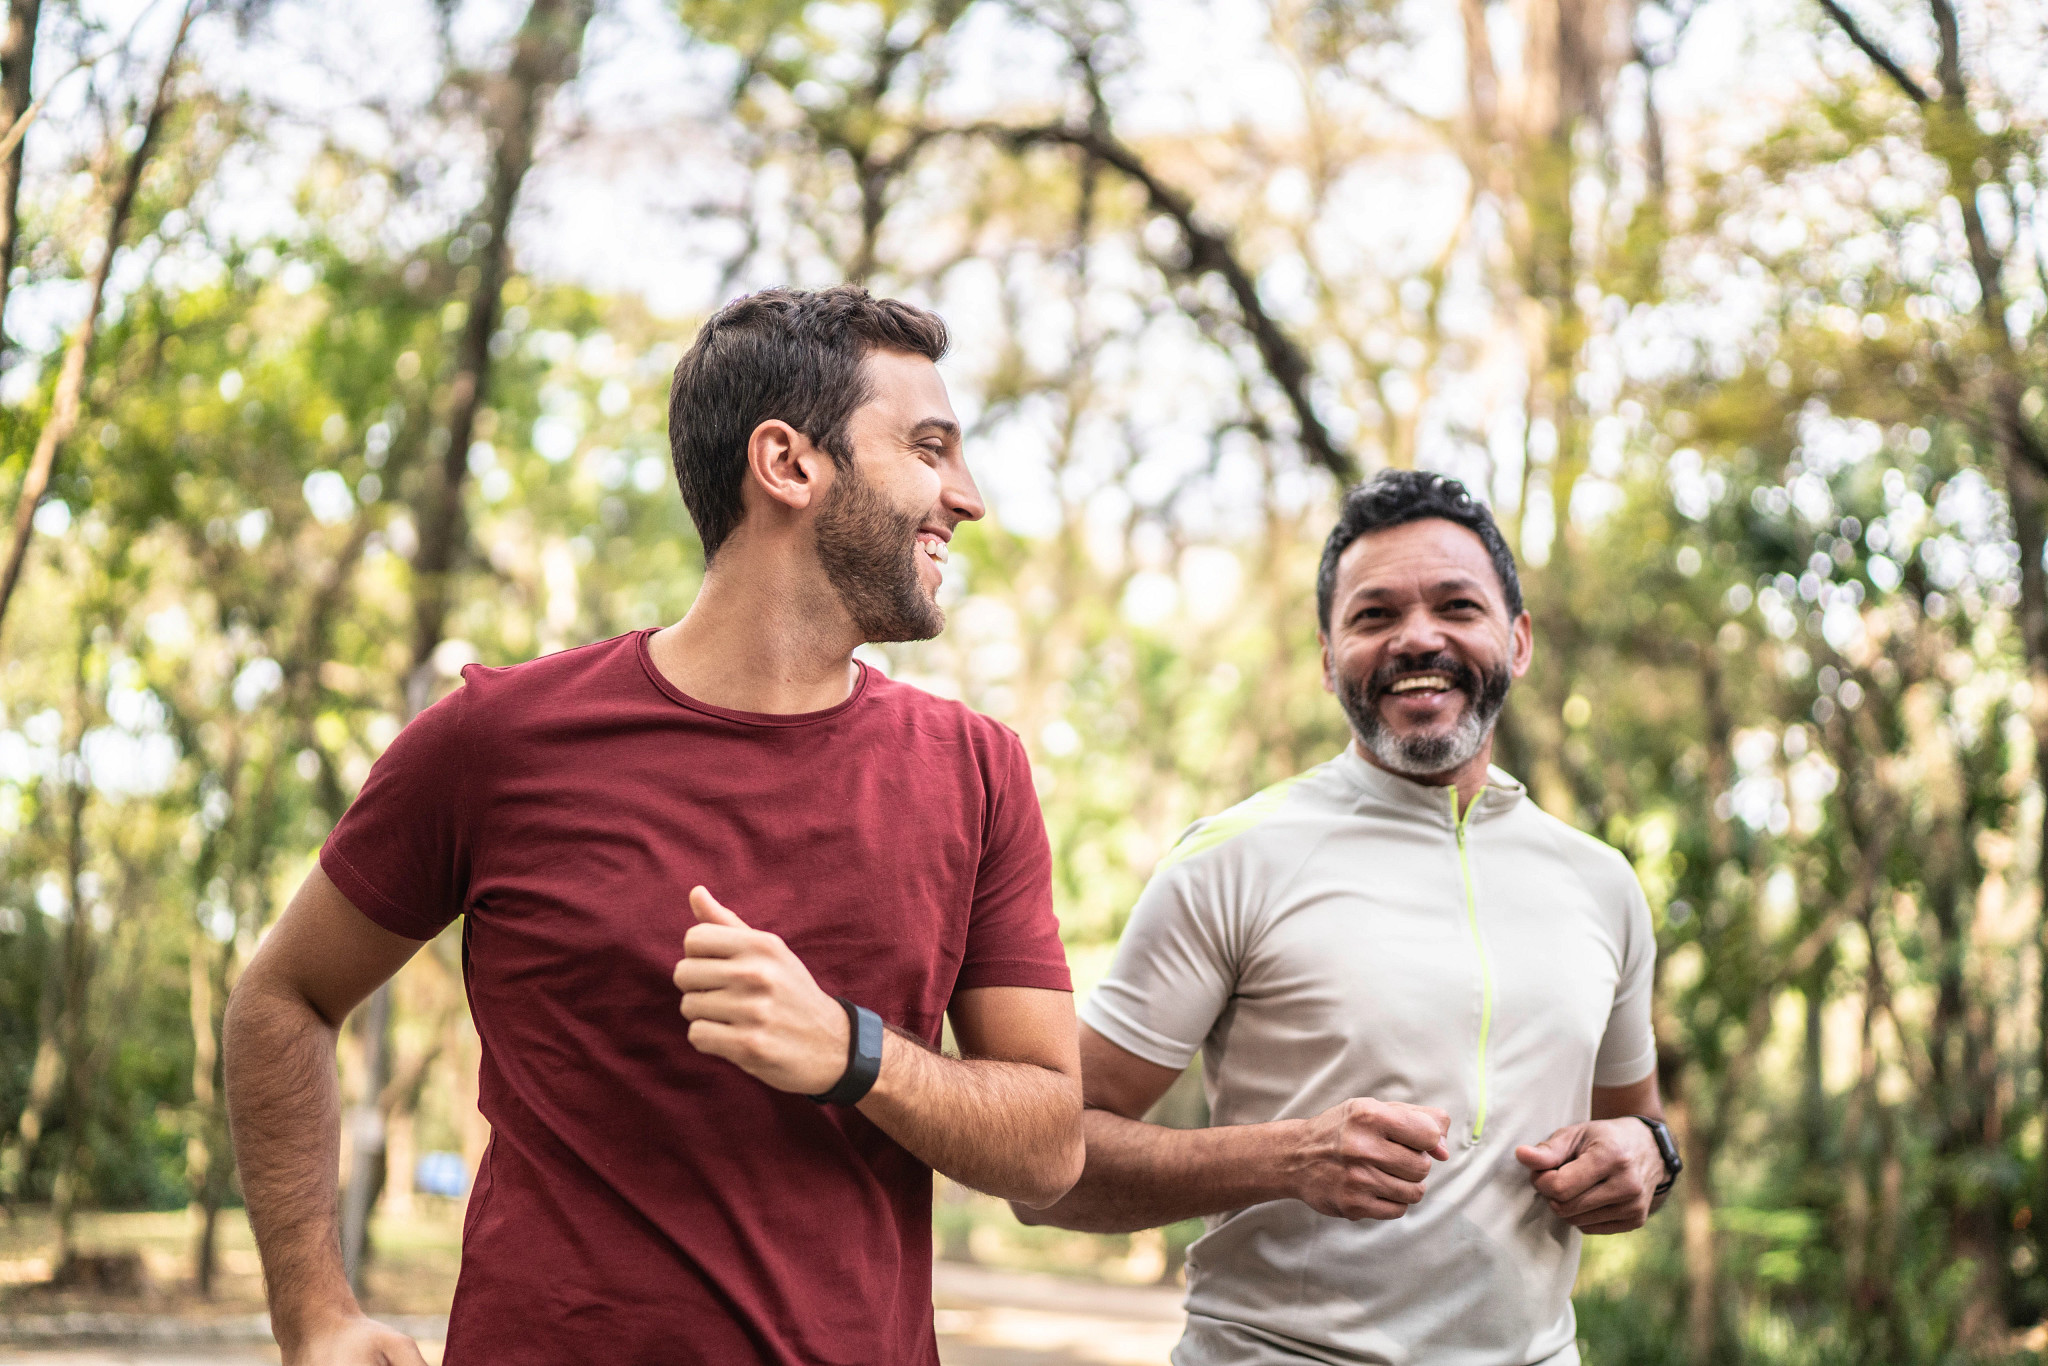 two male friends running together through a shady park